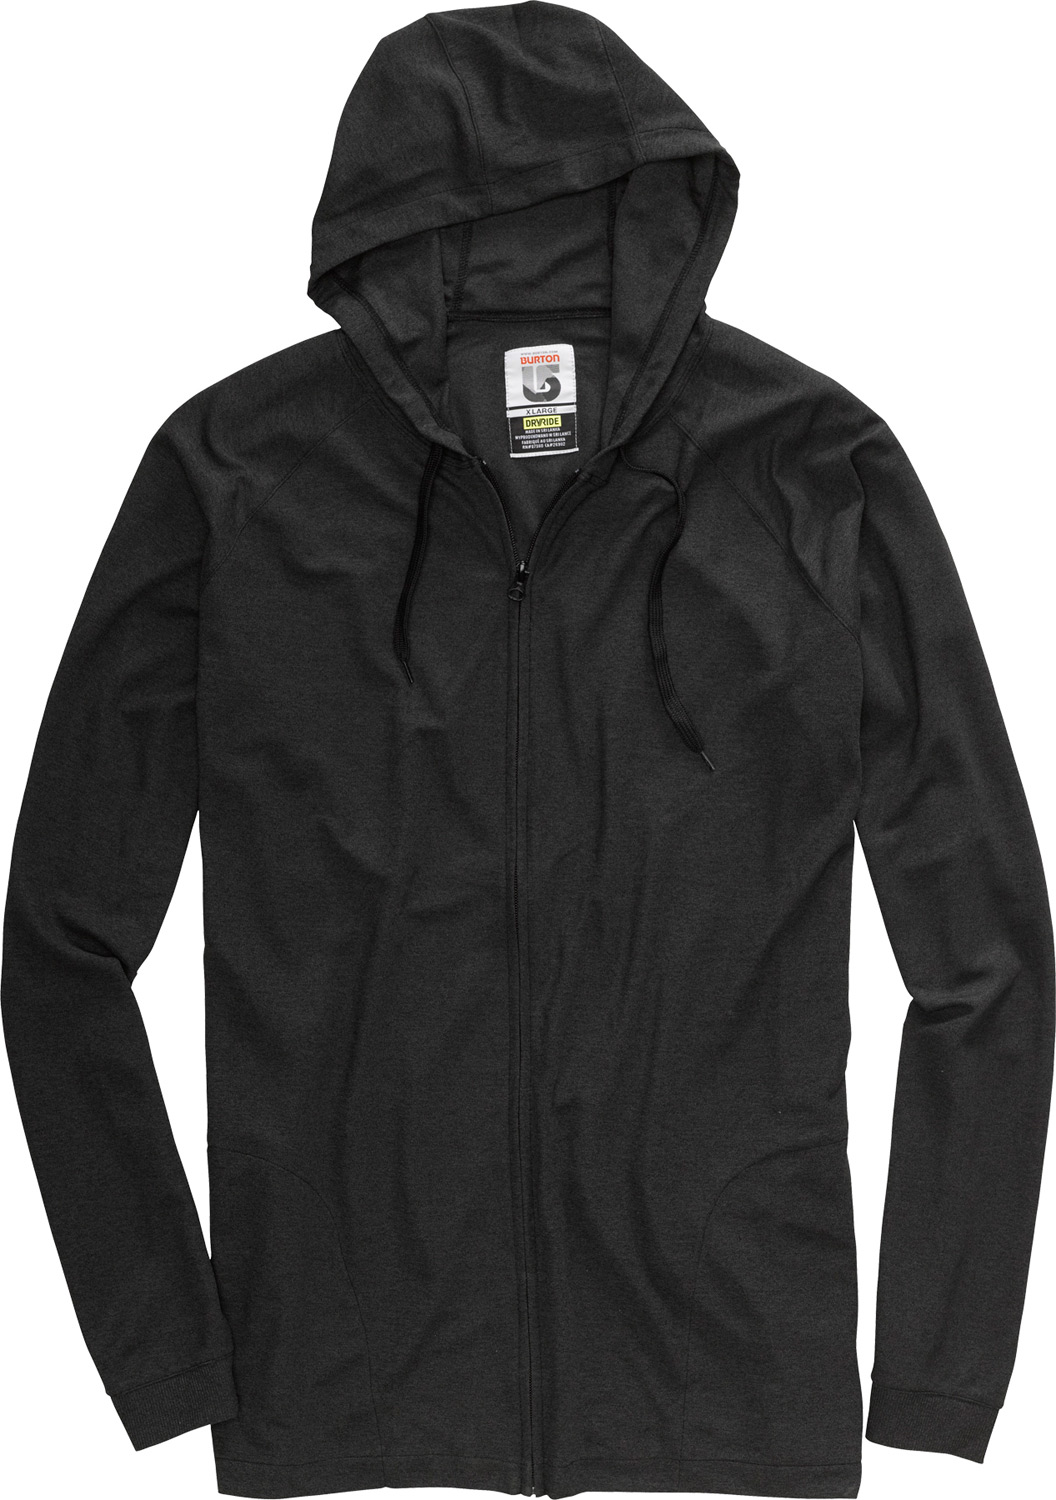 Camp and Hike Mid-winter to summer shred. Lightweight warmth that fits the soak and the stink.Key Features of the Burton Camp Hoodie: DRYRIDE Ultrawick Fabric Quick Drying/High Breathable Stretch 360 Stink Proof microbial finish Hood with Drawstring Handwarmer Pockets - $41.95